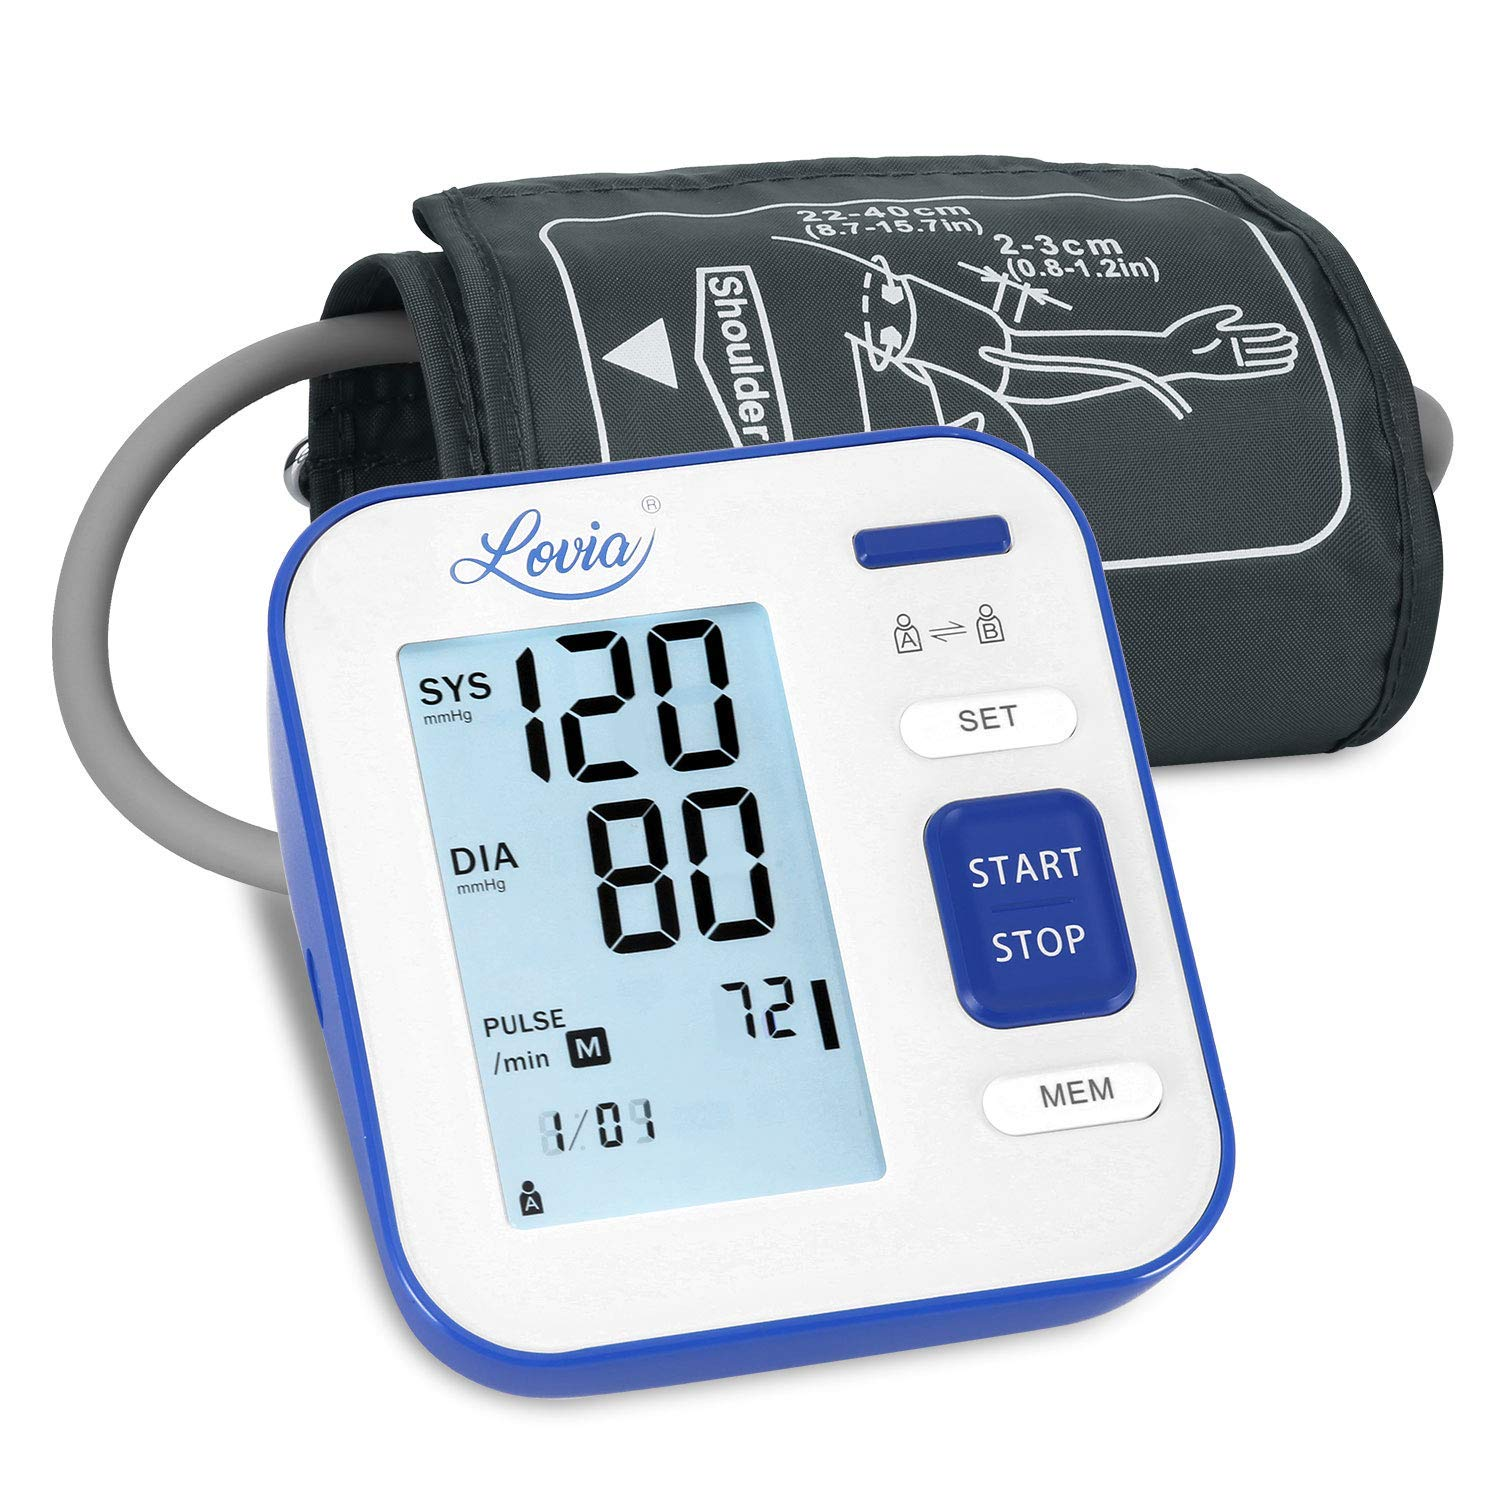 Blood Pressure Monitor Upper Arm, LOVIA Accurate Automatic Digital BP Machine for Home Use & Pulse Rate Monitoring Meter with Cuff 22-40cm, 2×120 Sets Memory, LCD Backlight by Lovia